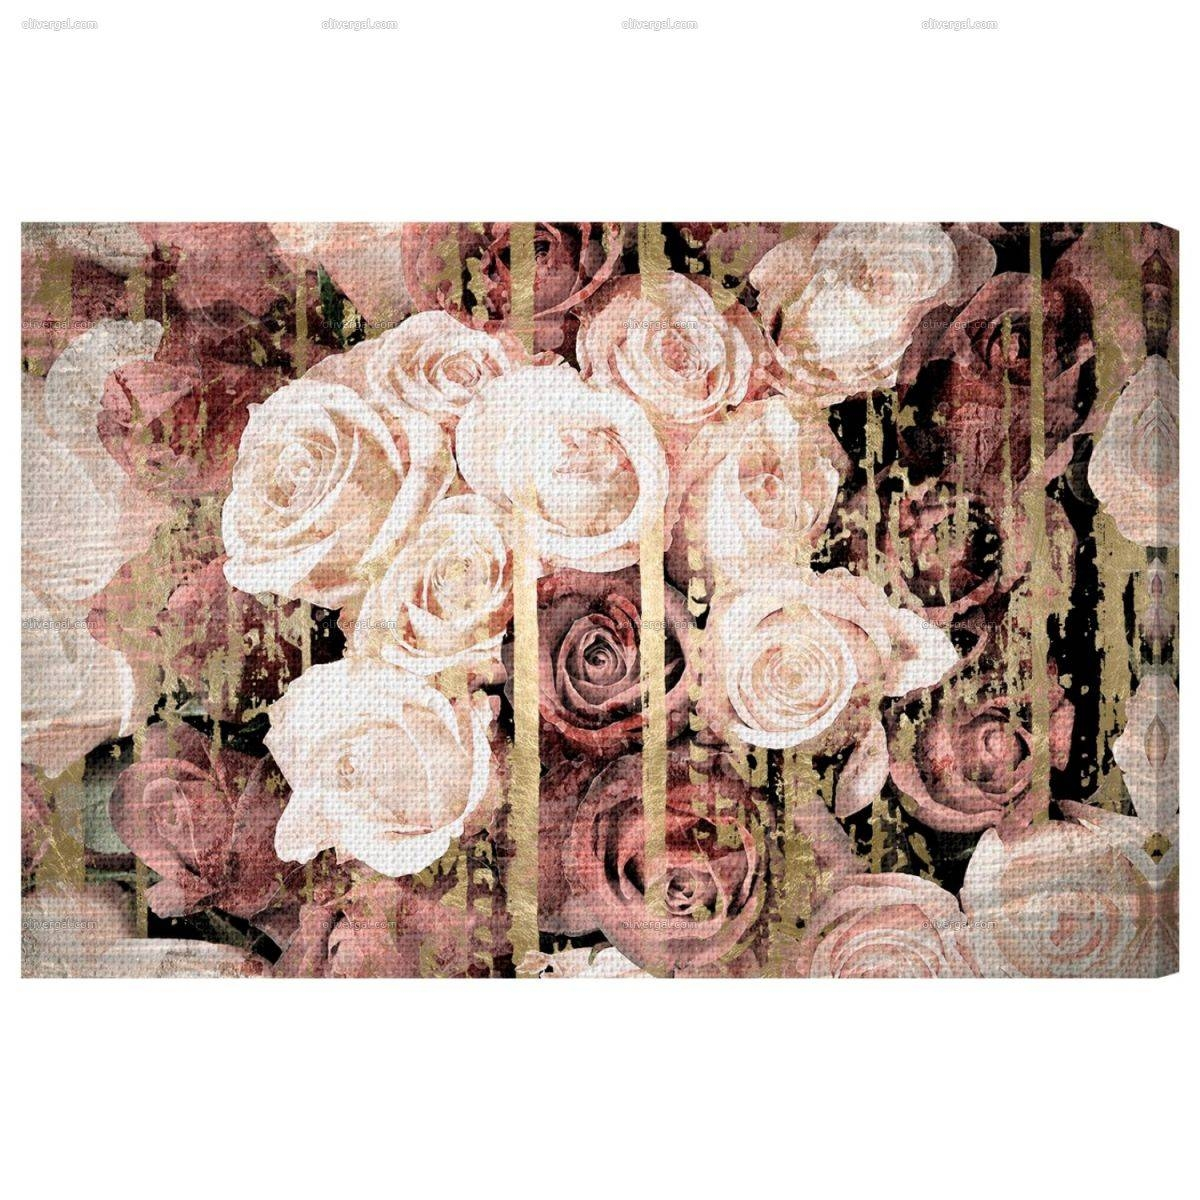 Shabby Chic Romance — Oliver Gal Throughout Most Recently Released Shabby Chic Canvas Wall Art (View 4 of 25)